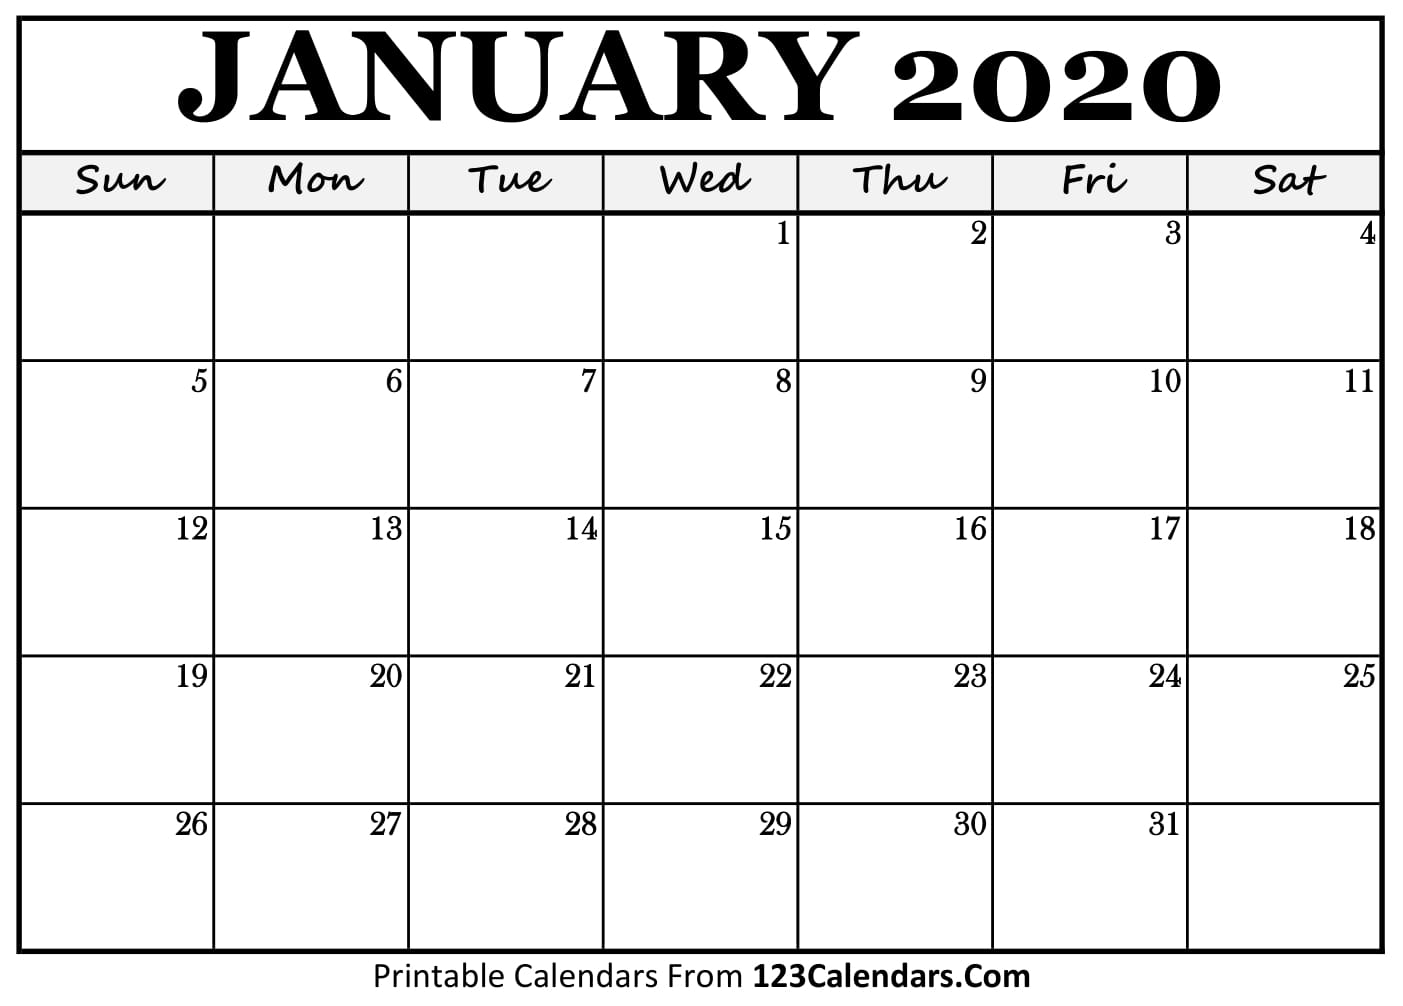 Fill In The Blank Calendar December 2020- January 2020 January 2020 Printable Calendar | 123Calendars.com